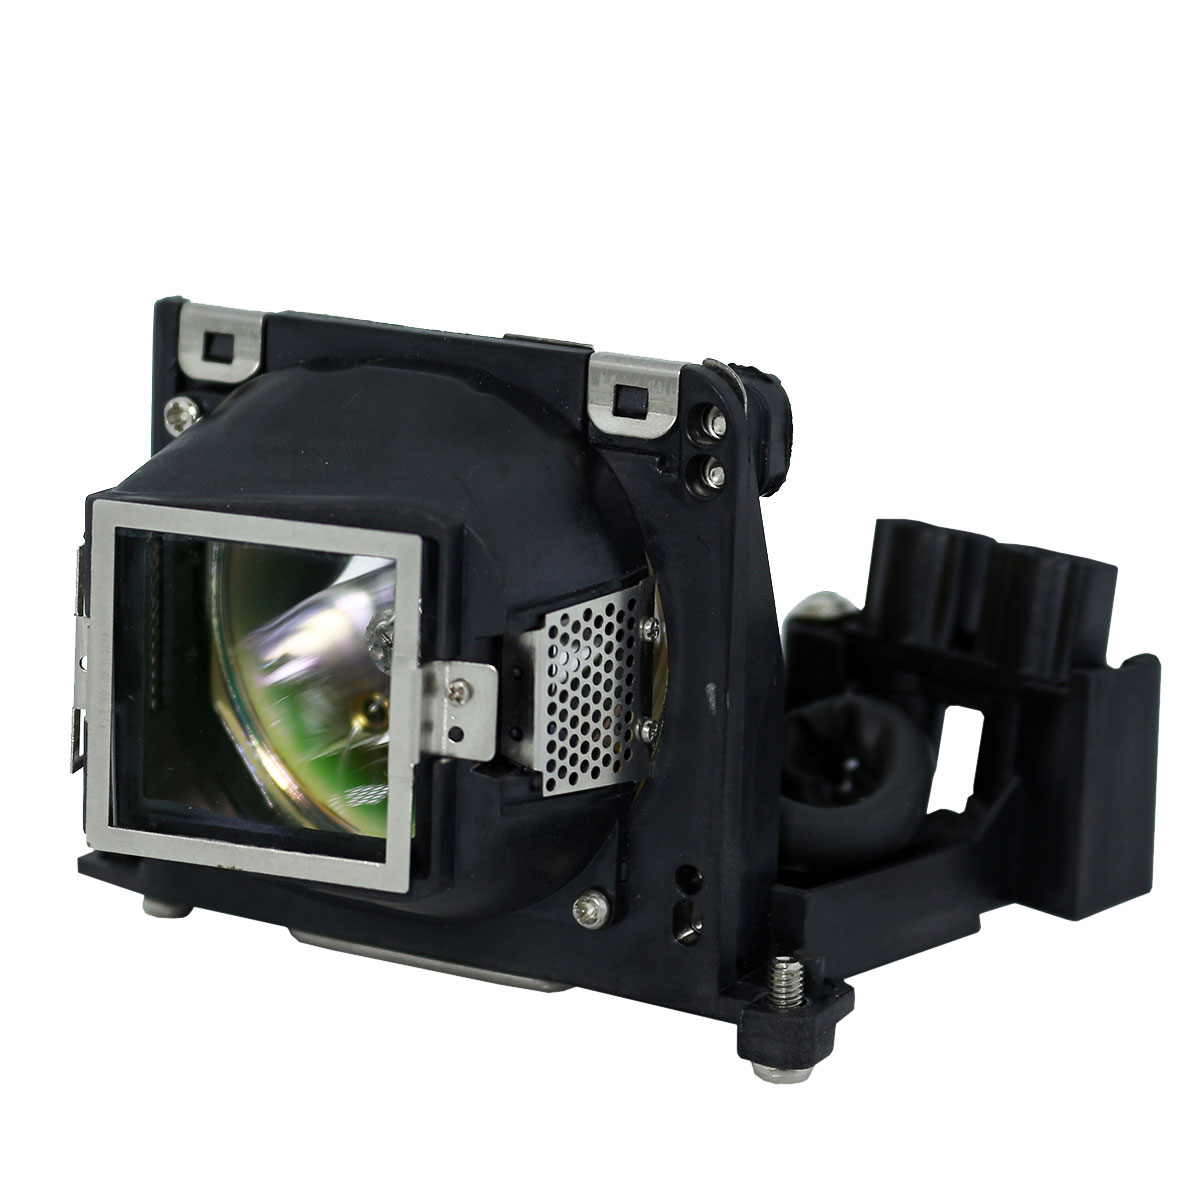 Original Philips Projector Lamp Replacement for Premier HE-S480 (Bulb Only) - image 5 de 5